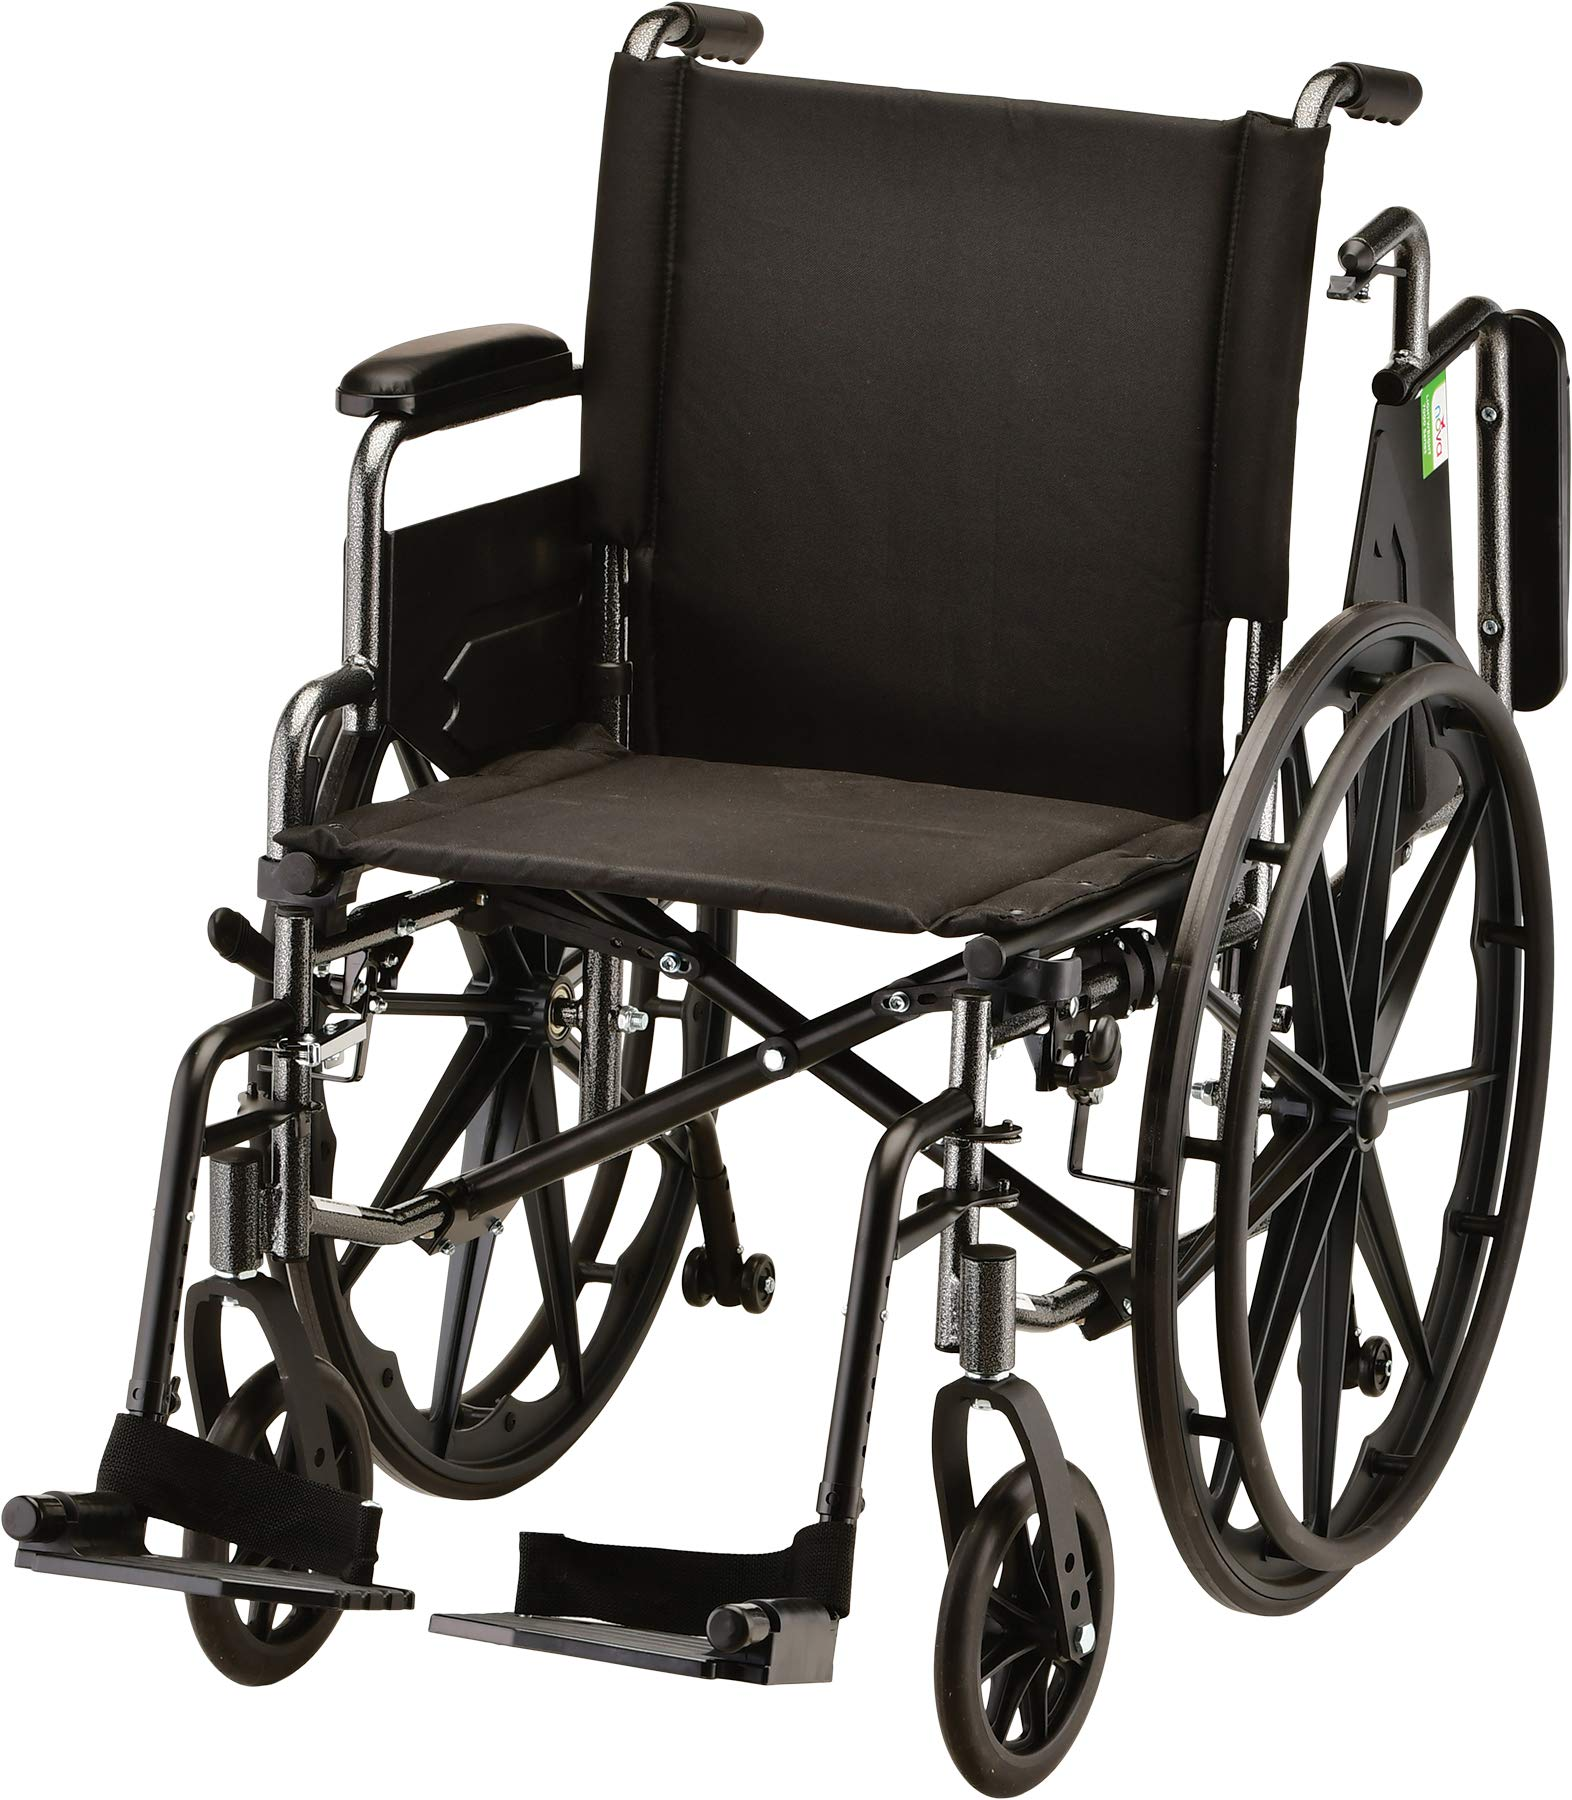 NOVA Lightweight Wheelchair with Flip Up Desk Arms (for Easy Transfer), Adjustable & Easy Release Footrests, Safety Anti-Tippers, Choose from 3 Seat Widths - 16'', 18''& 20'', Weighs only 32 lbs. by NOVA Medical Products